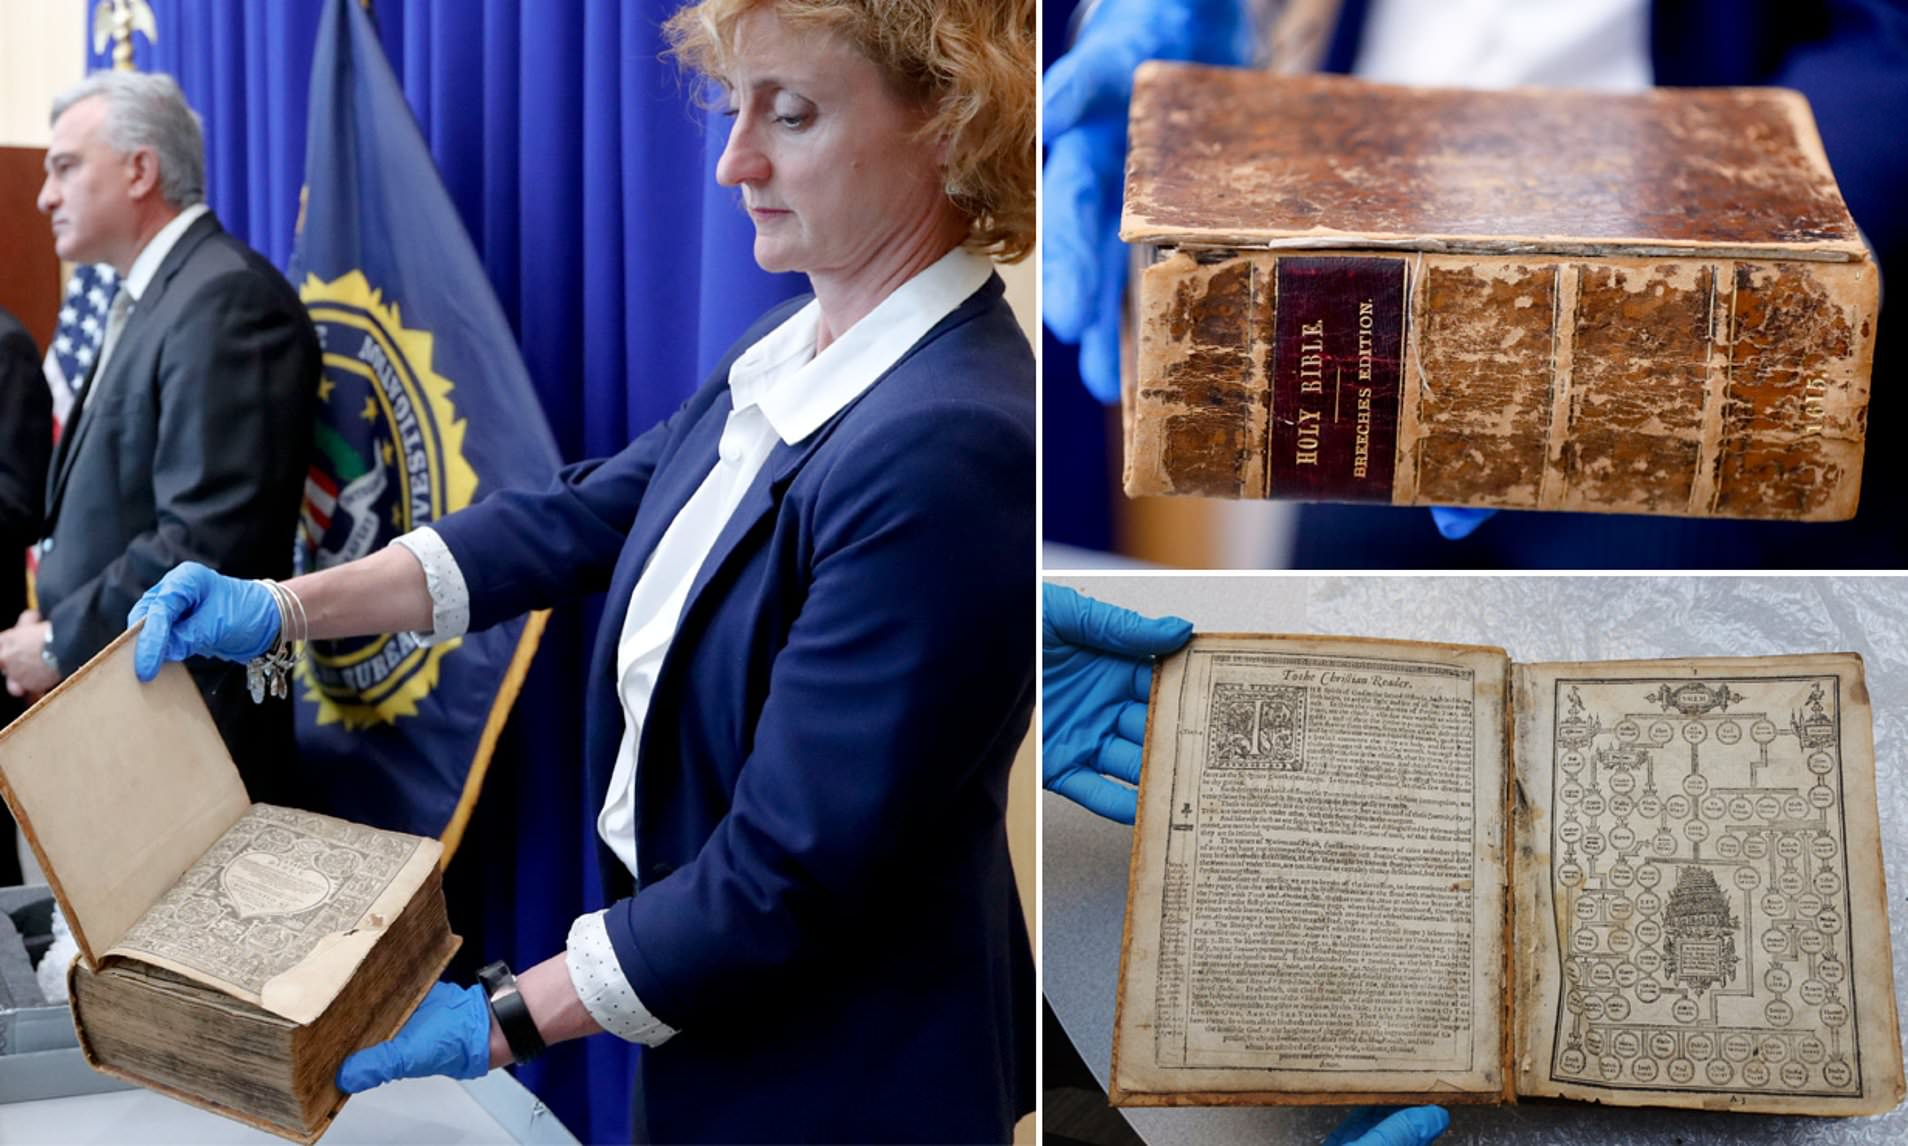 Prized 17th century Bible is returned to Pittsburgh library more than 20 years after it was stolen and smuggled to the Netherlands in $8 million theft operation